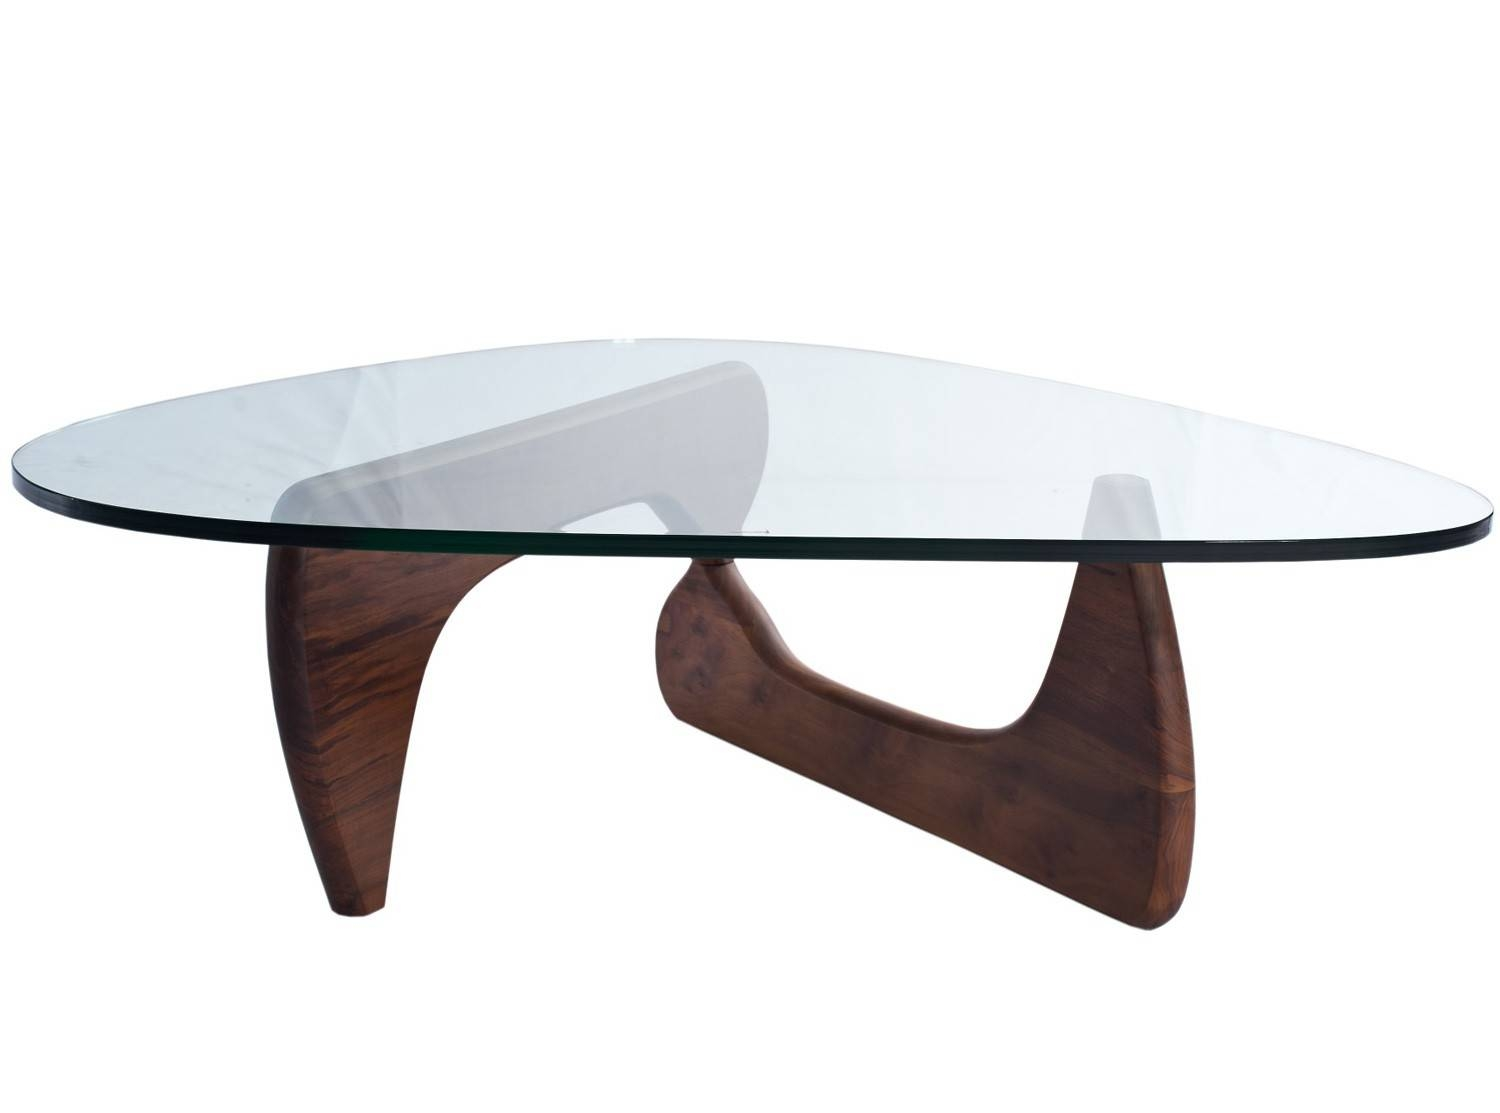 Noguchi Coffee Table Also With A Isamu Noguchi Table Also With A in Noguchi Coffee Tables (Image 11 of 30)